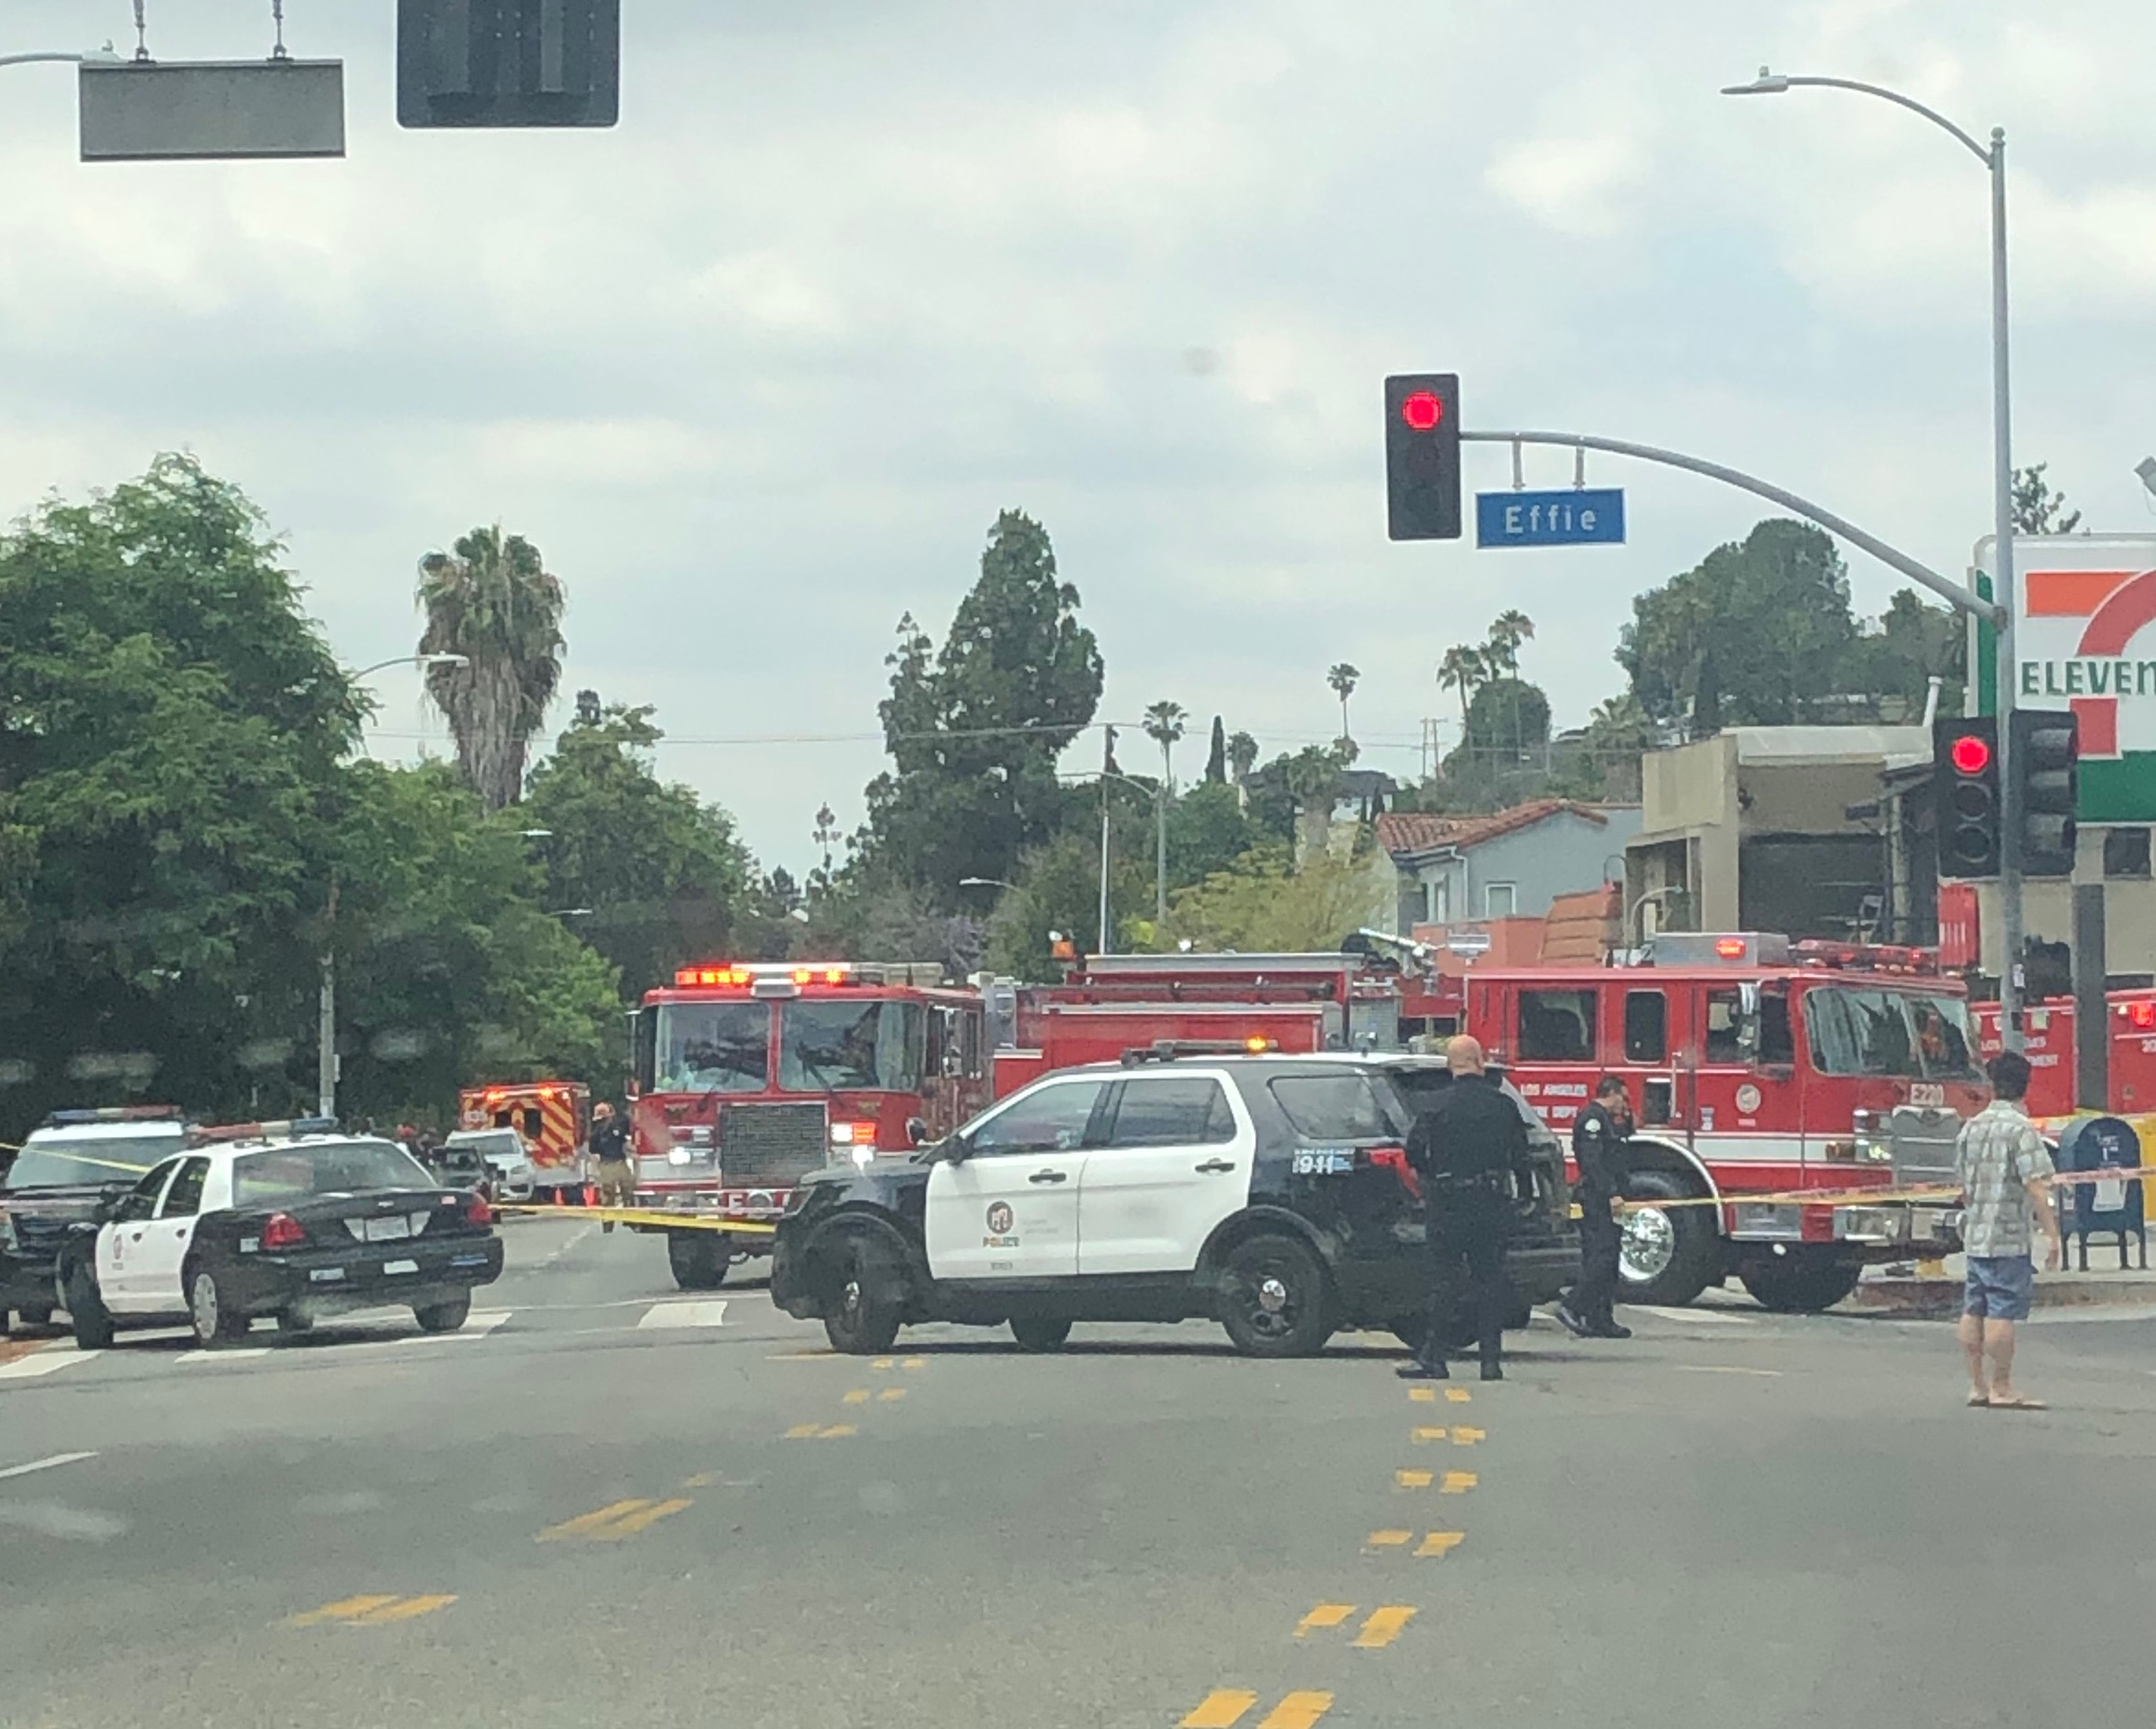 A photo of a police line in front of a car crash at a restaurant.